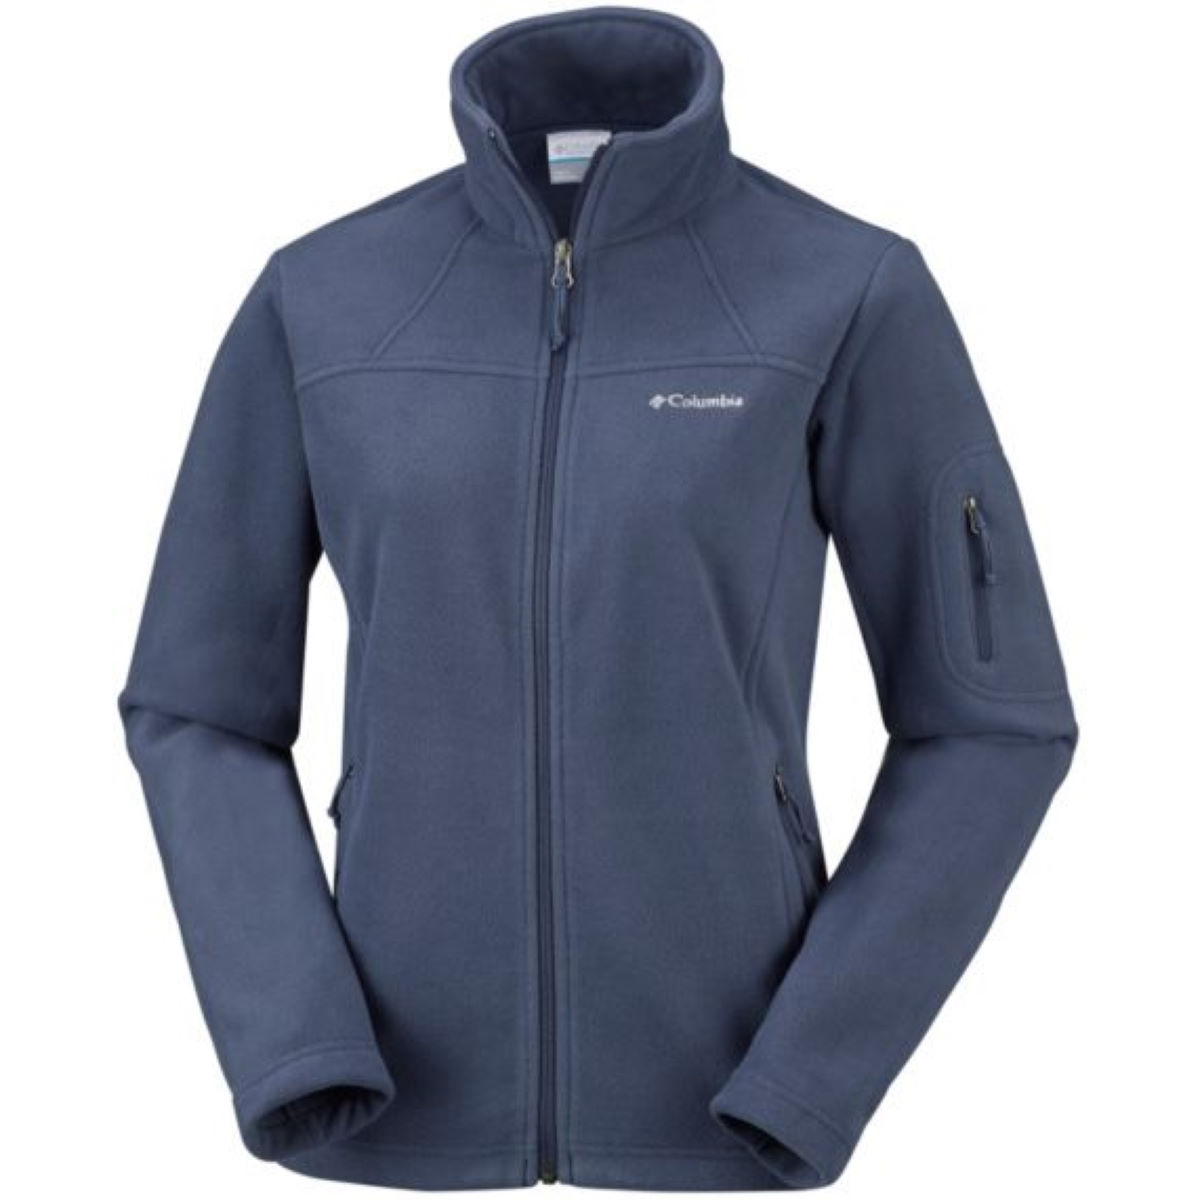 Veste Femme Columbia Fast Trek™ II - S Nocturnal Polaires moyennes